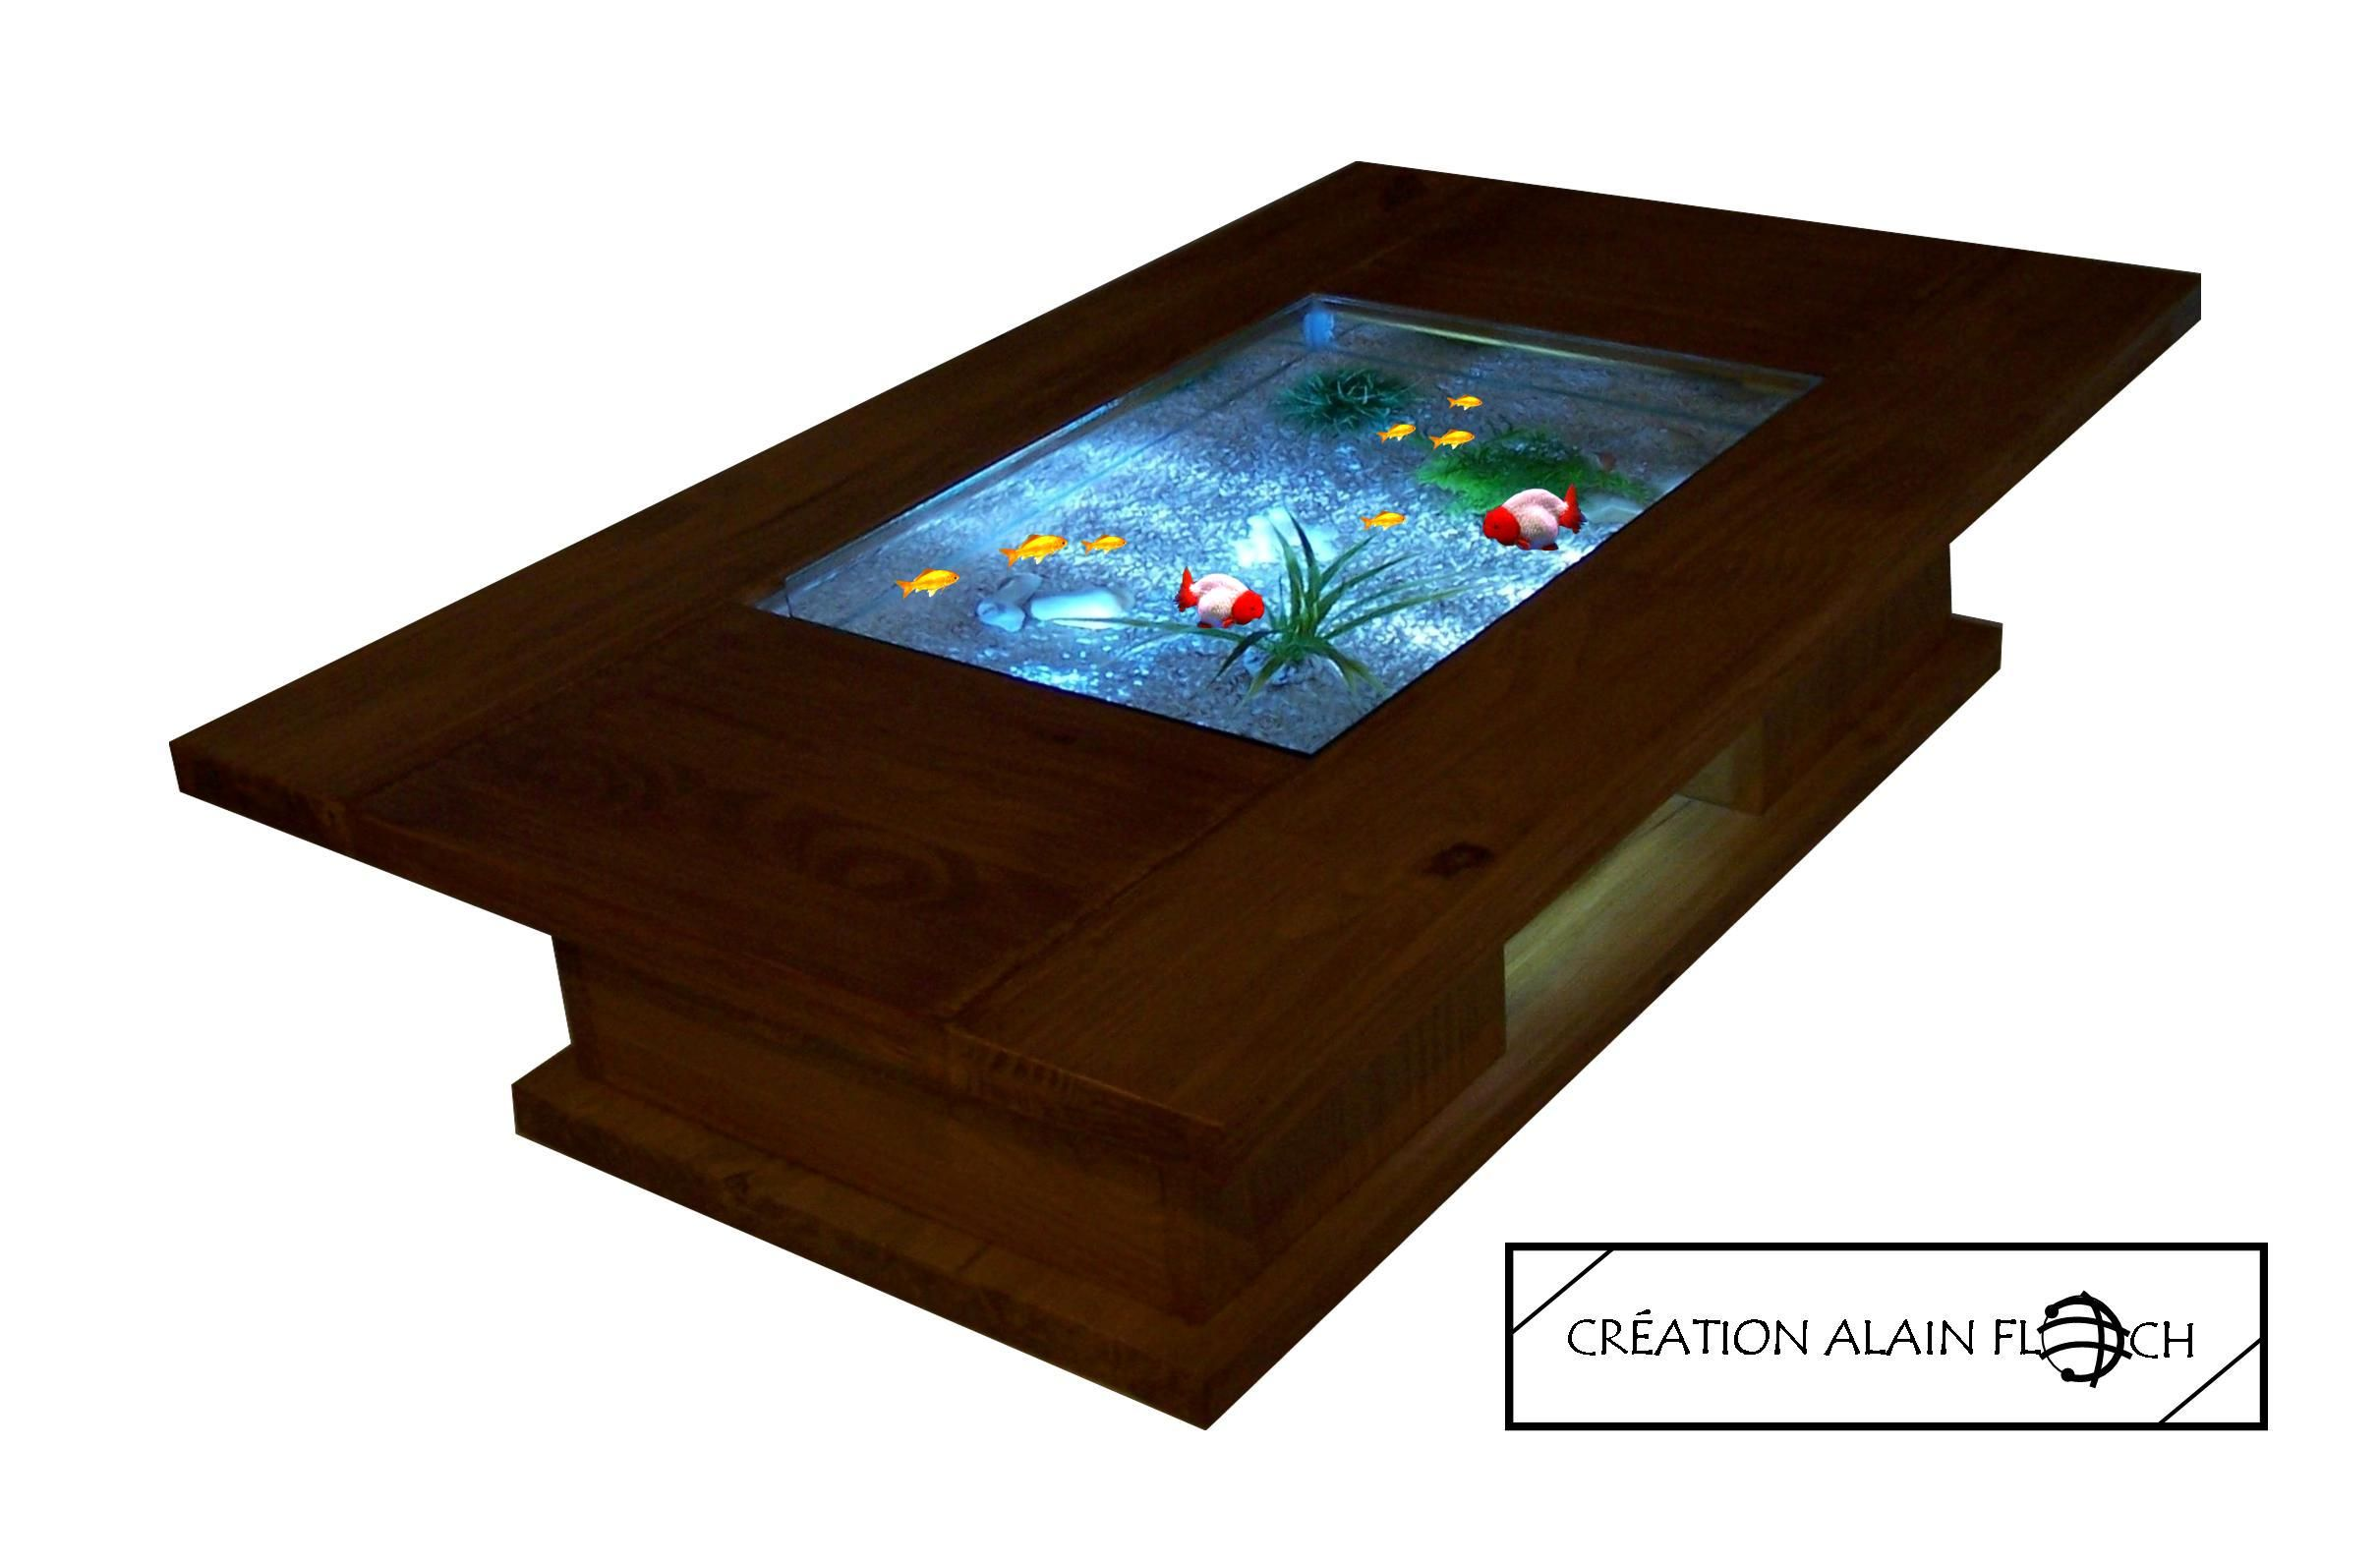 Table Basse Aquarium Terrarium Helio Sans Fil Table Basse  # Sortes Des Meuble En Bois Morte Television